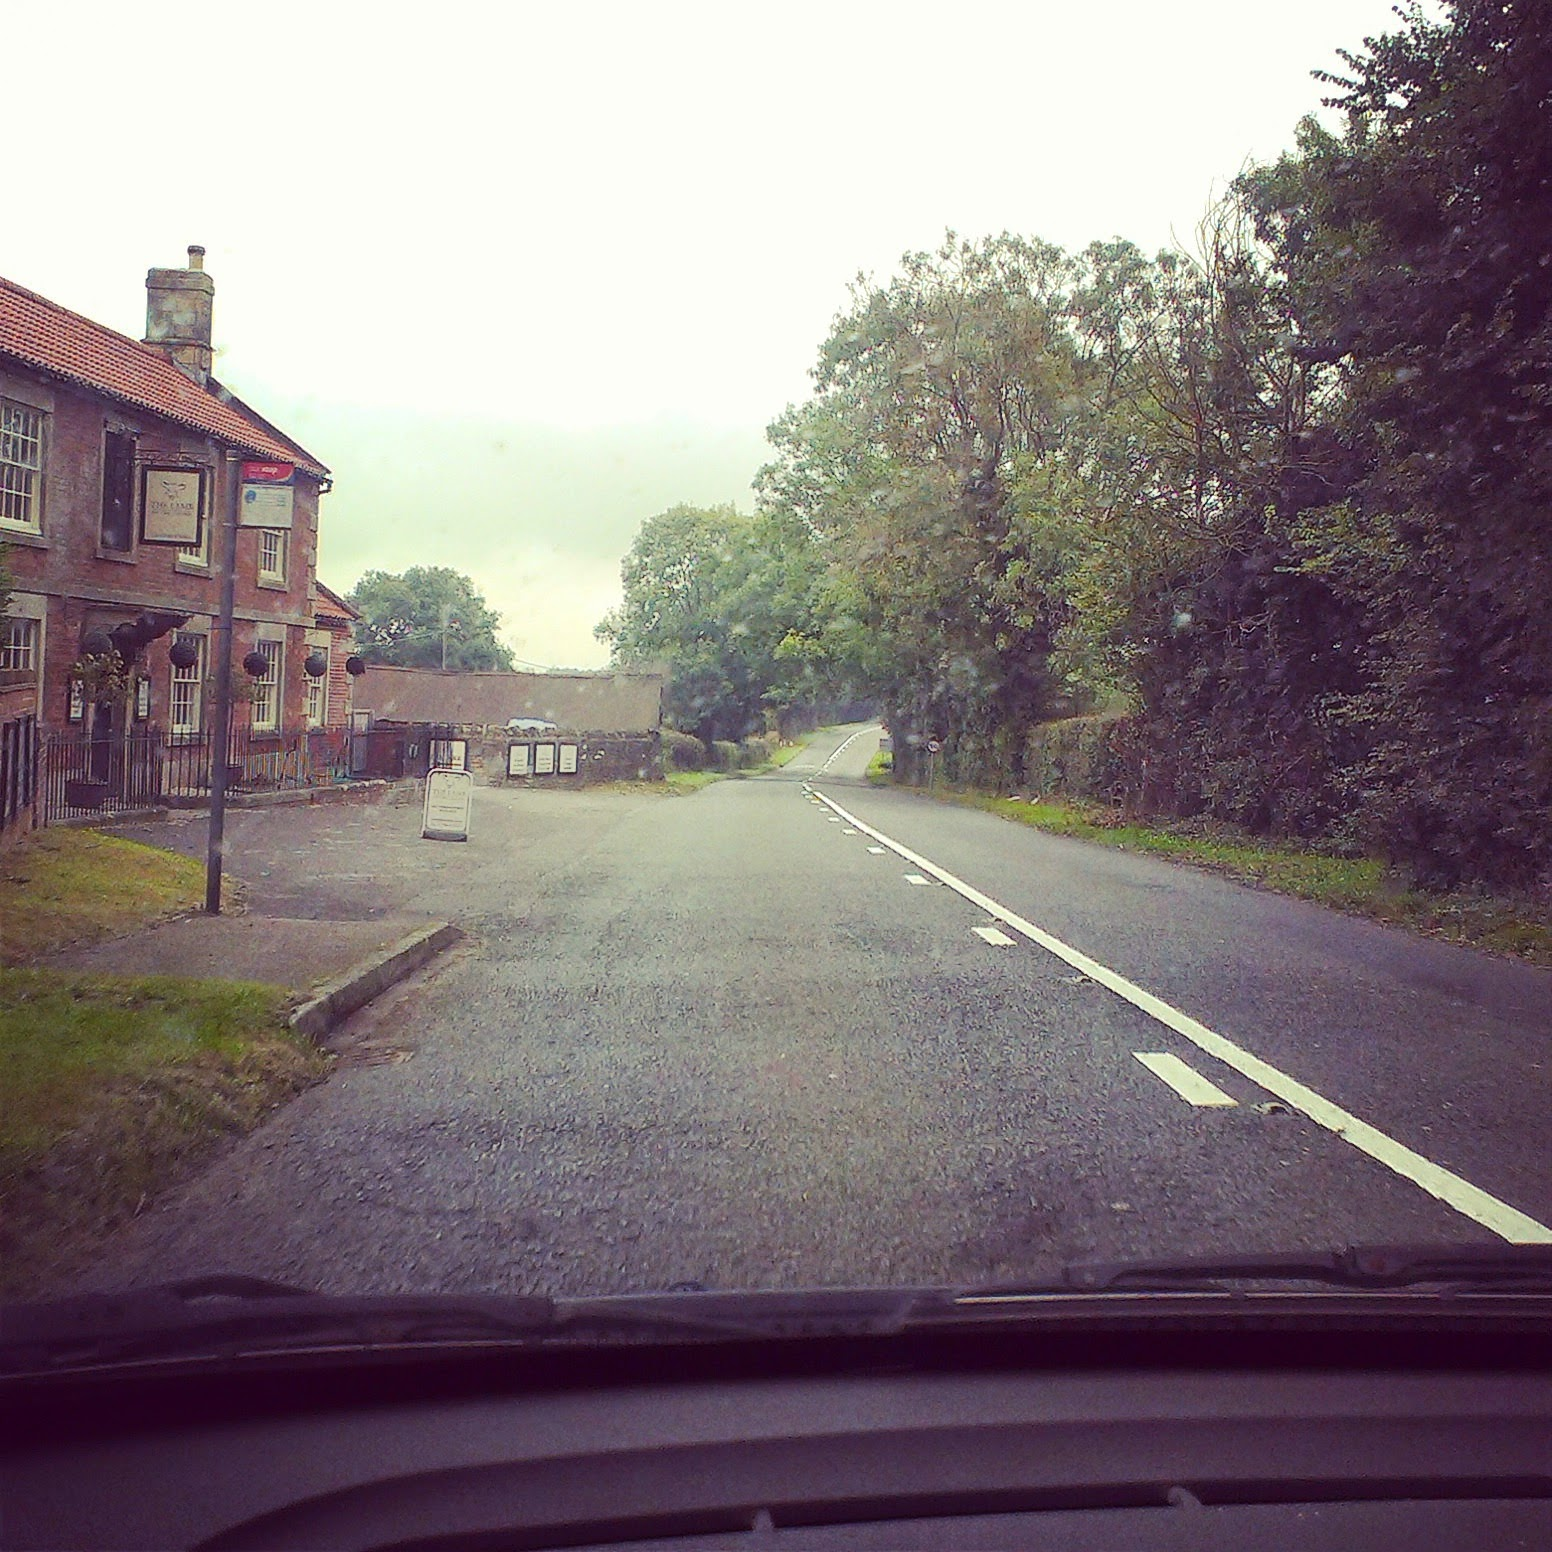 10am - driving through country lanes